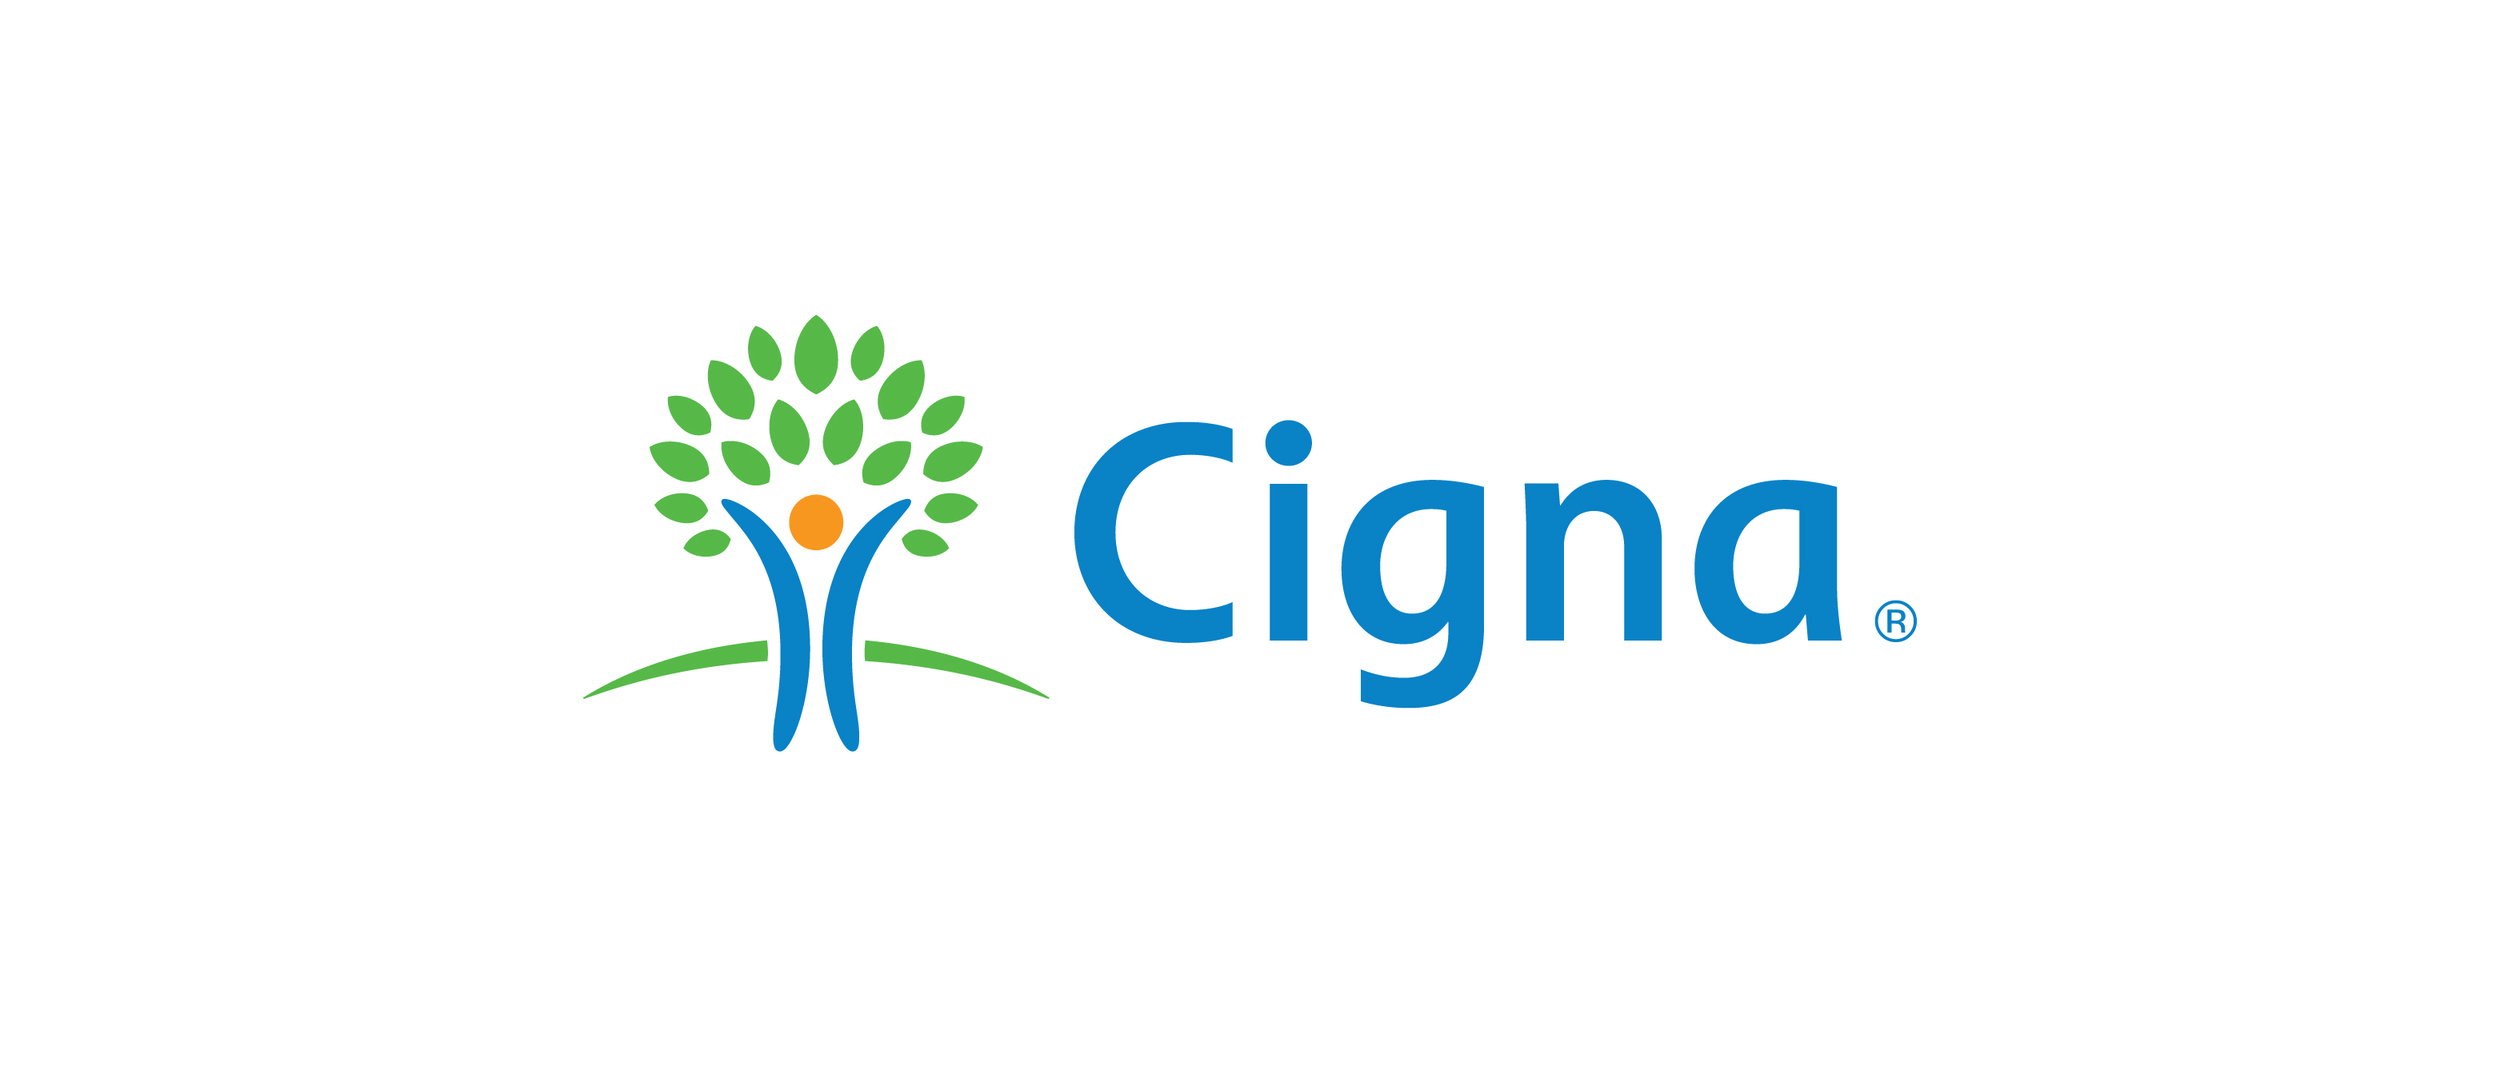 Ward_Family_Dentistry_Insurance_Cigna.jpg